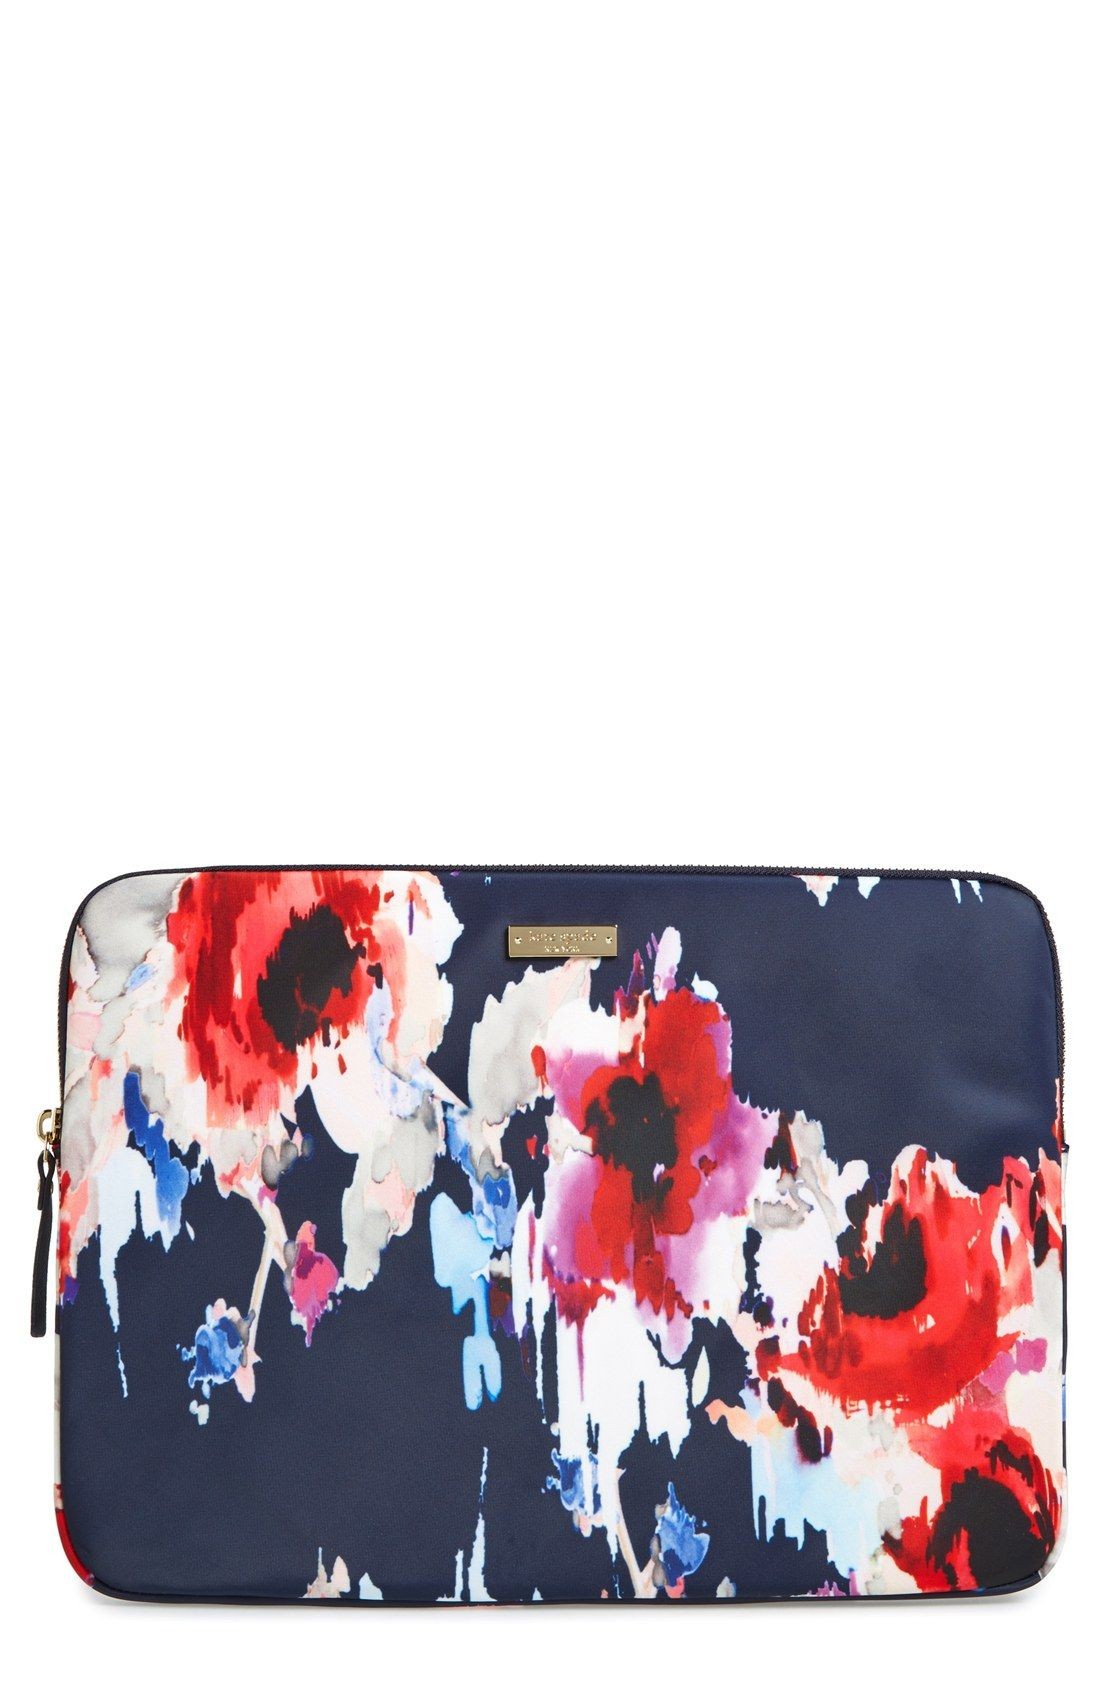 on sale fbe05 6287c kate spade new york 'hazy floral' laptop sleeve (13 inch ...